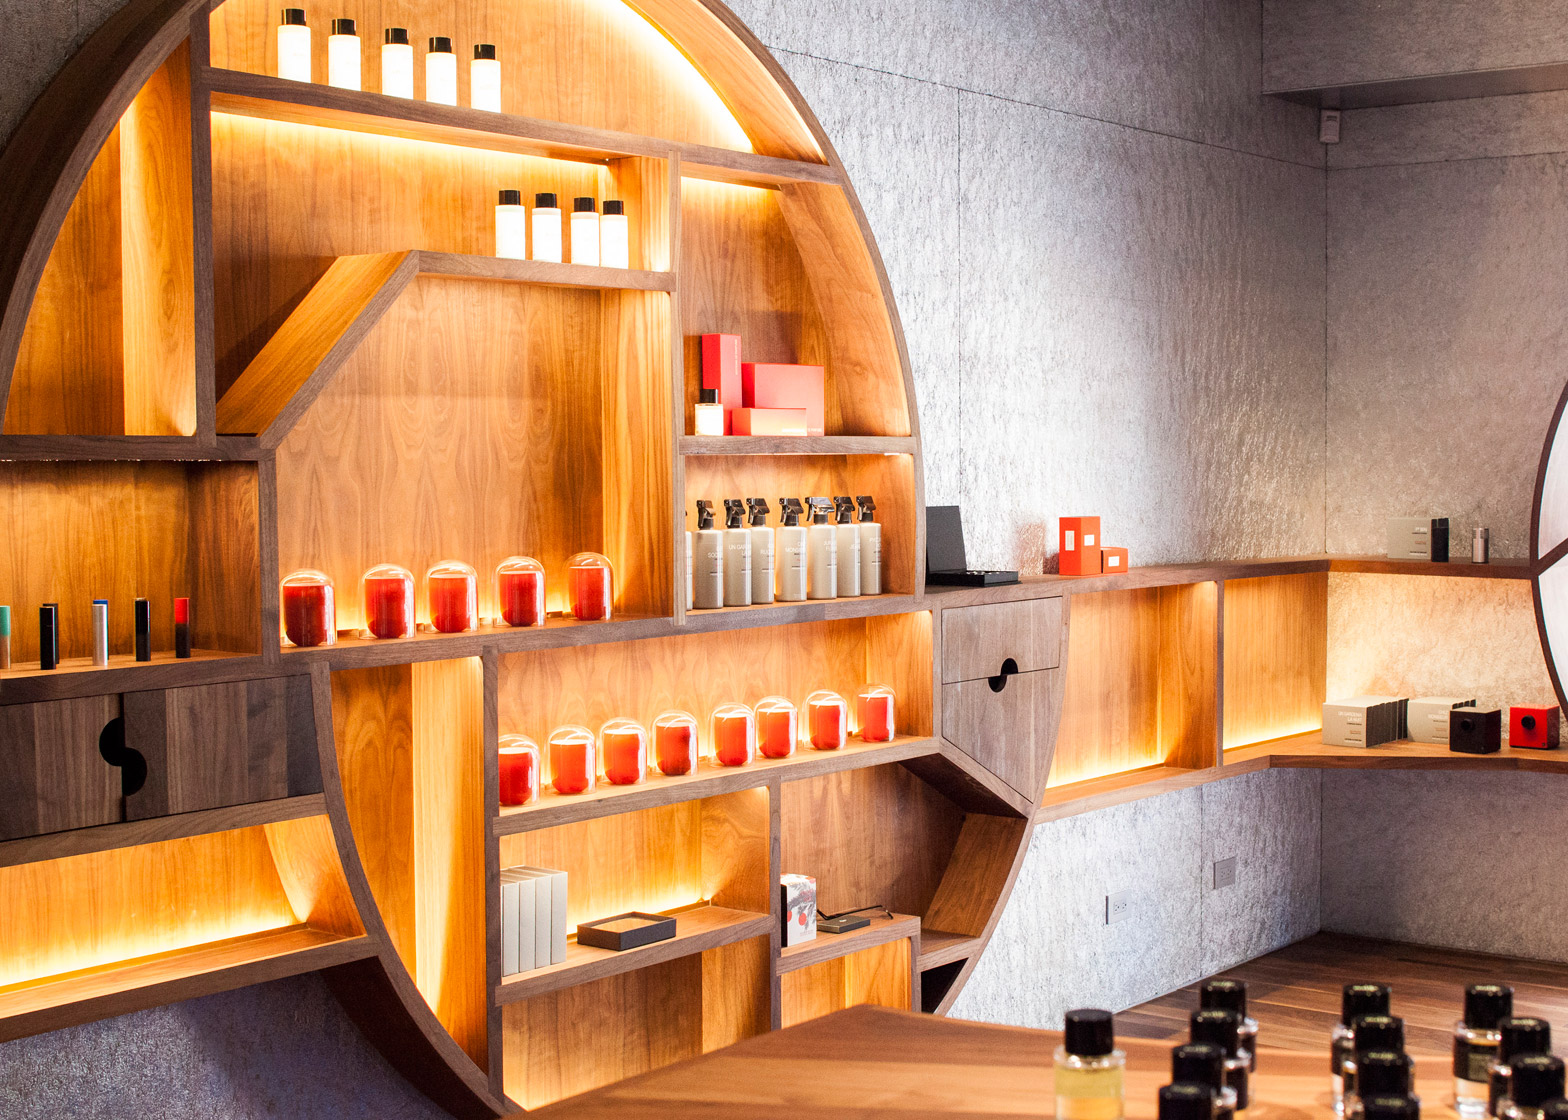 Editions de Parfums Frederic Malle by Steven Holl Architects